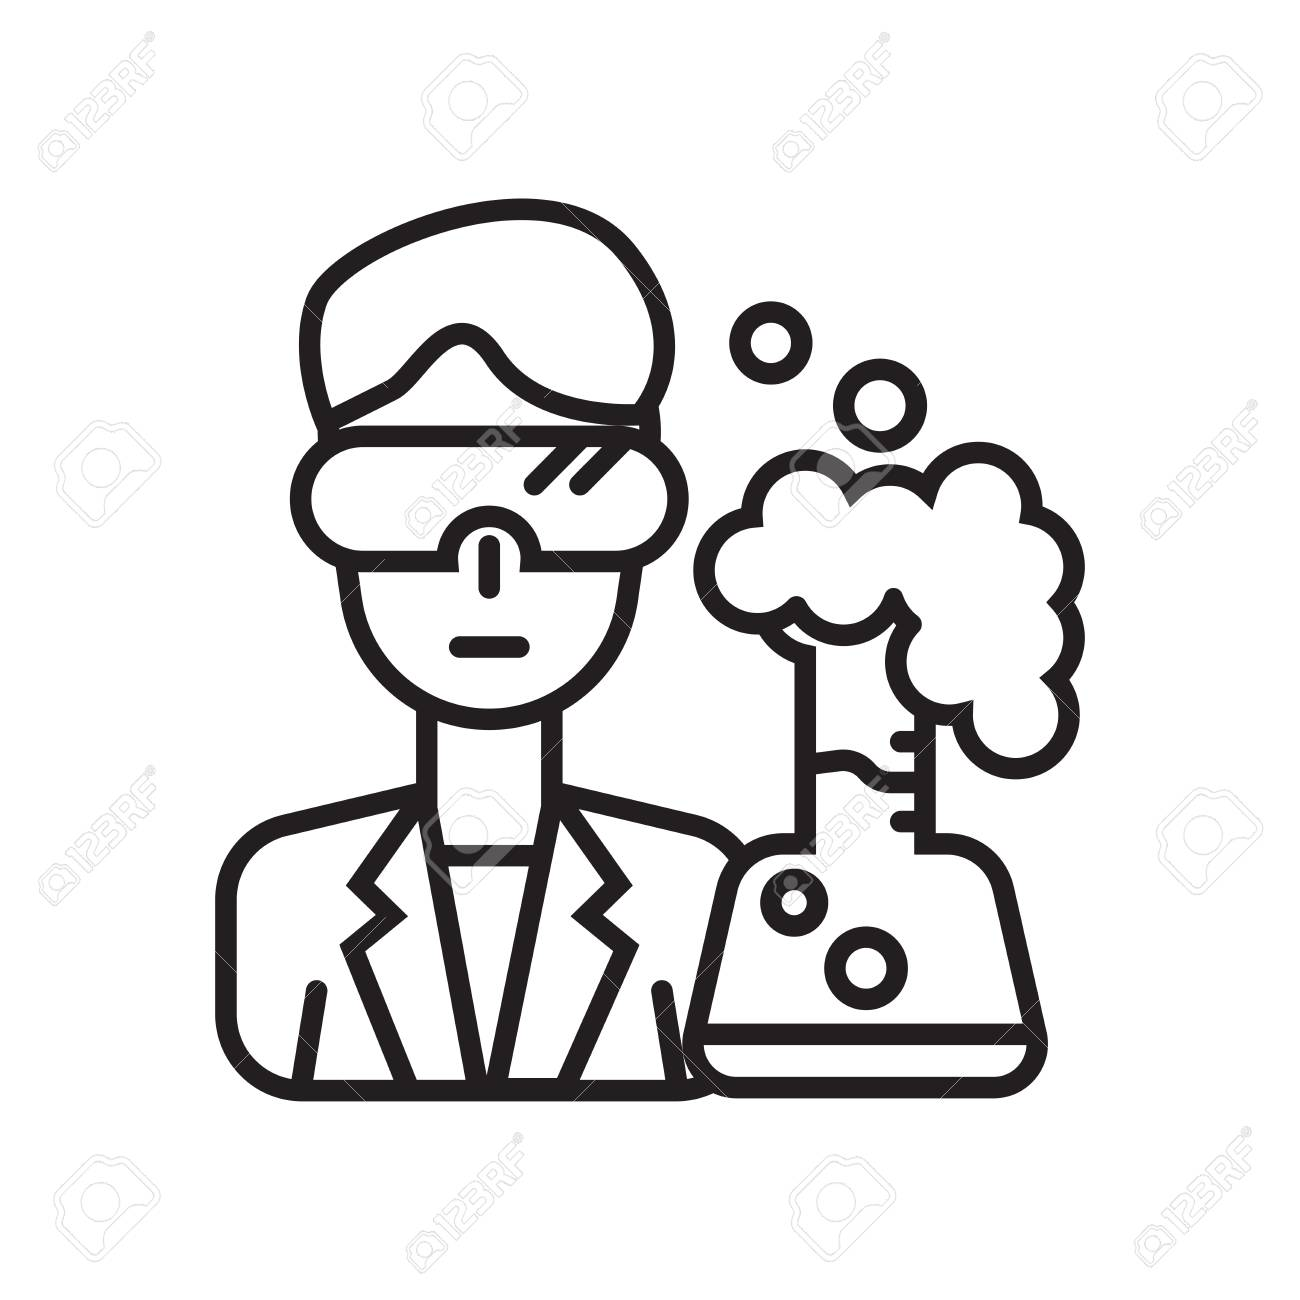 scientist icon vector isolated on white background for your web royalty free cliparts vectors and stock illustration image 106943673 scientist icon vector isolated on white background for your web